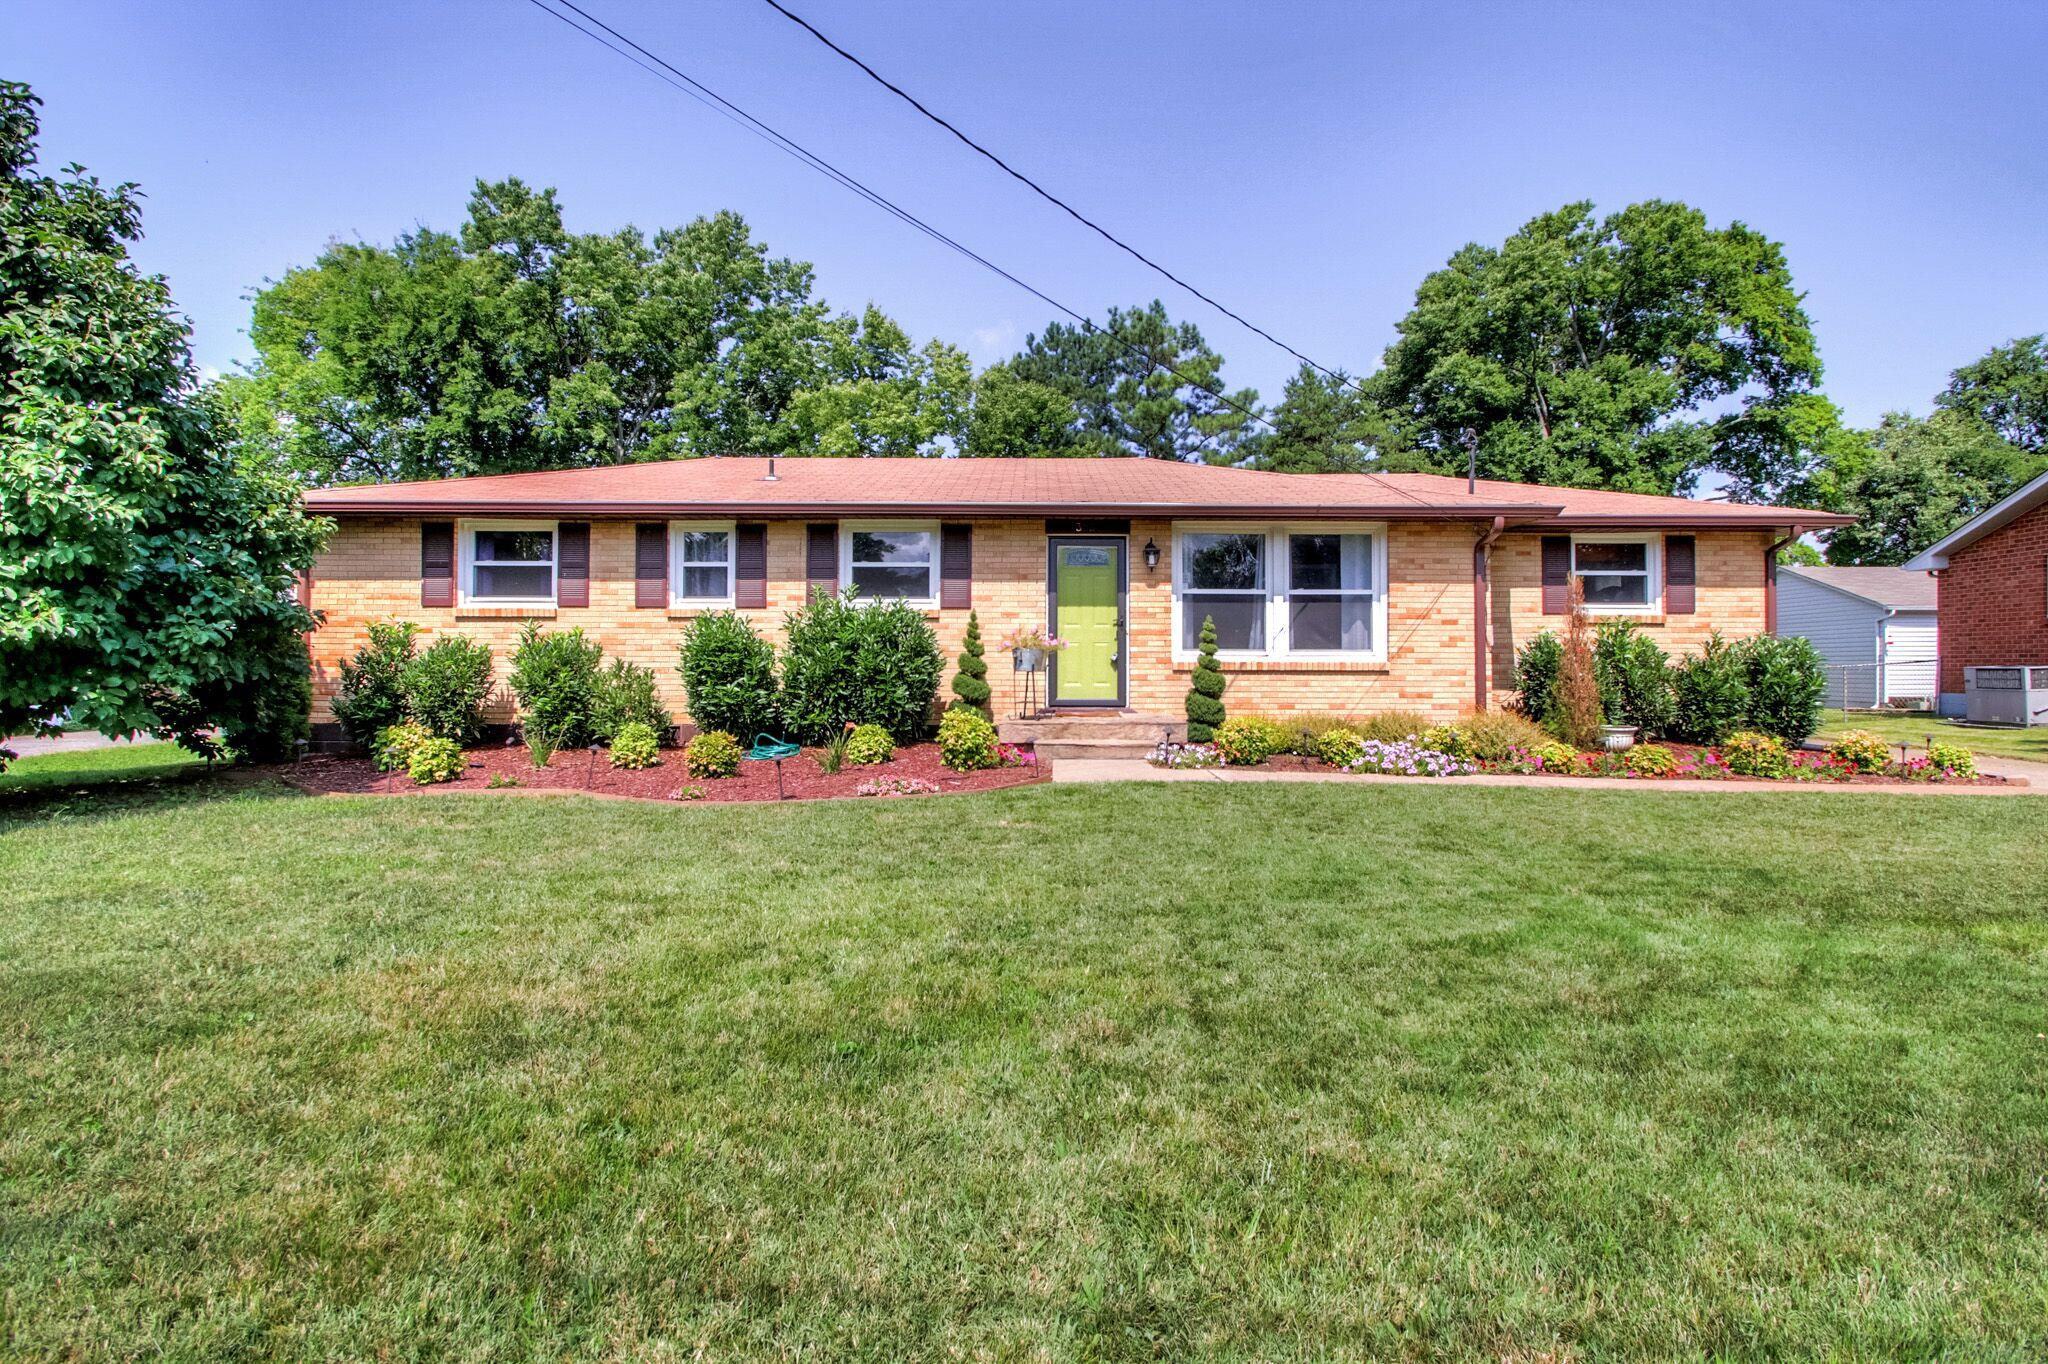 3820 Plantation Dr, Hermitage in Davidson County County, TN 37076 Home for Sale